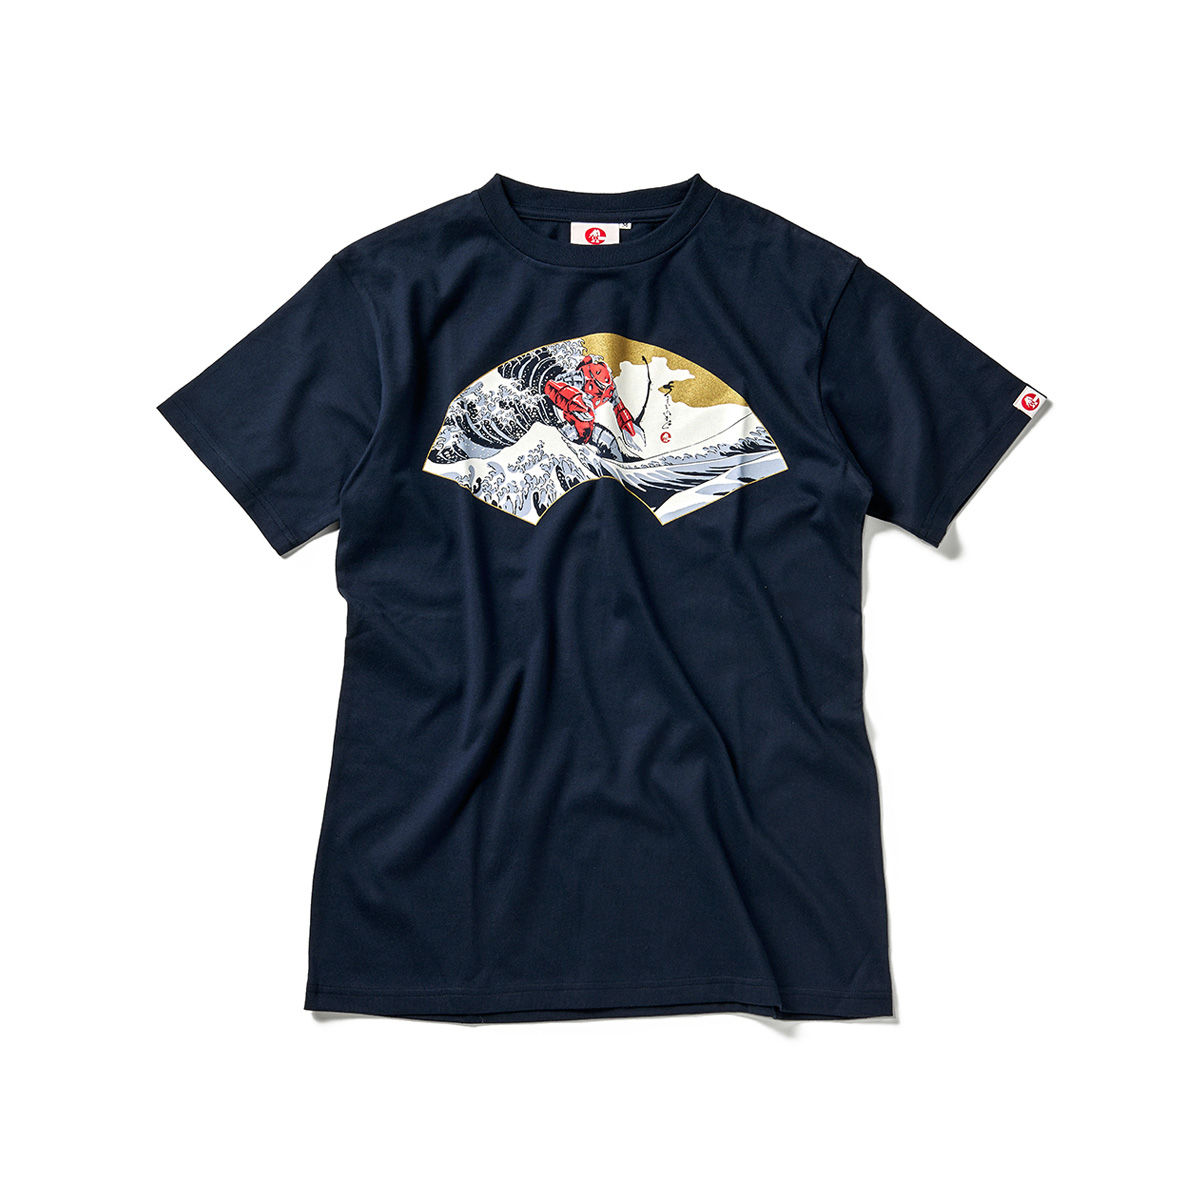 STRICT-G JAPAN Z'GOK AND THE GREAT WAVE T-SHIRT